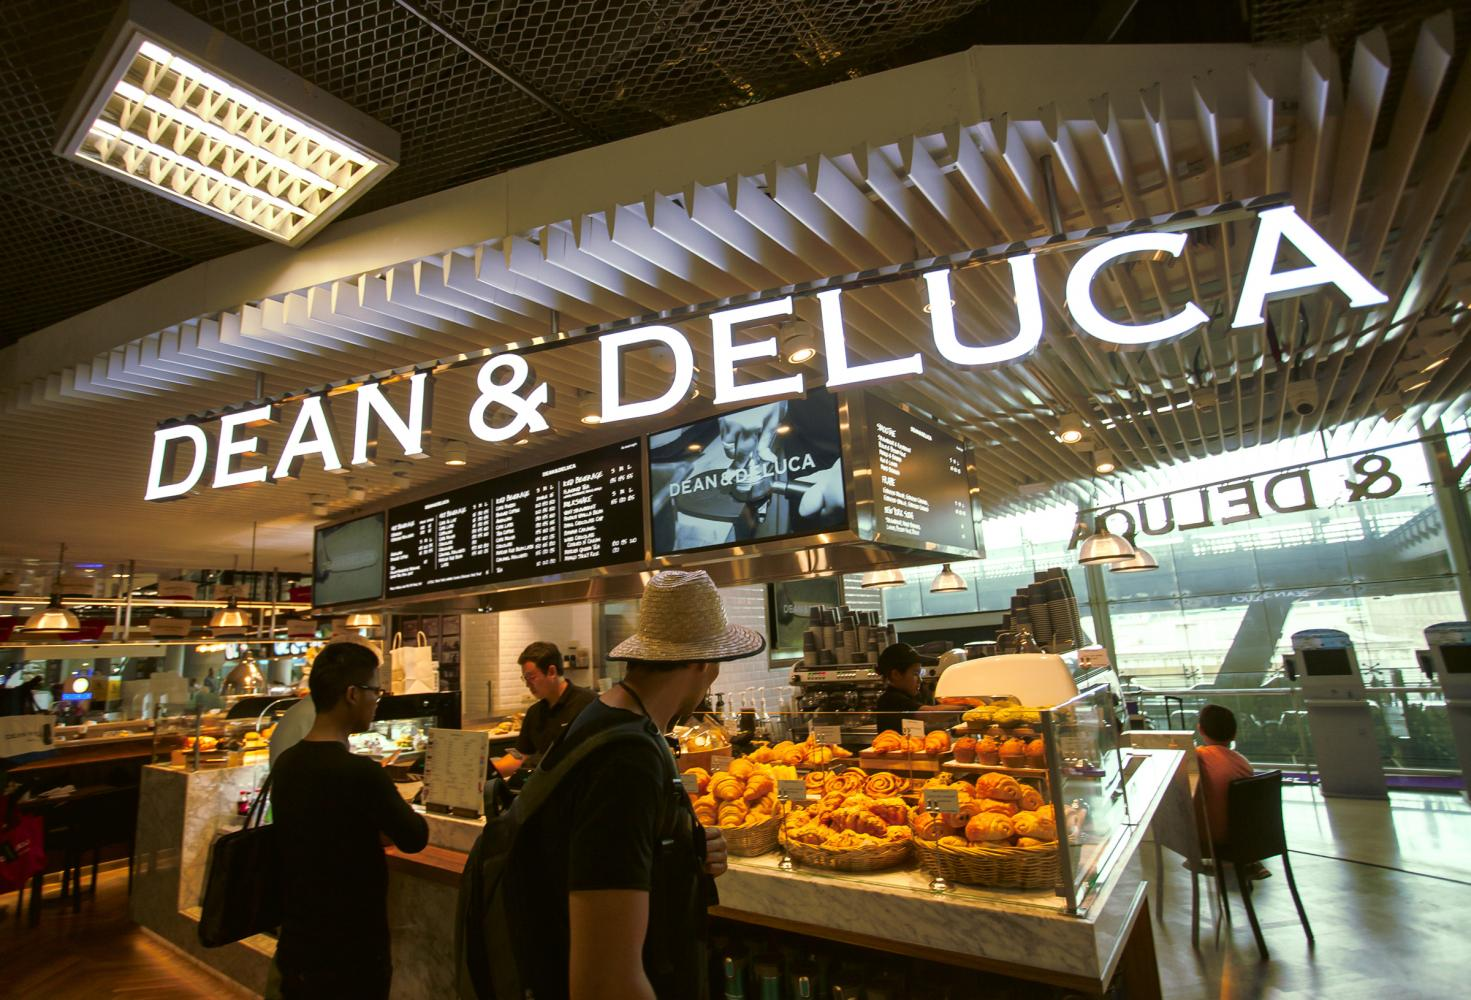 A Dean & DeLuca store at Suvarnabhumi airport. Pace Development Corporation plans to merge US branches of the gourmet grocer to offset steep losses.